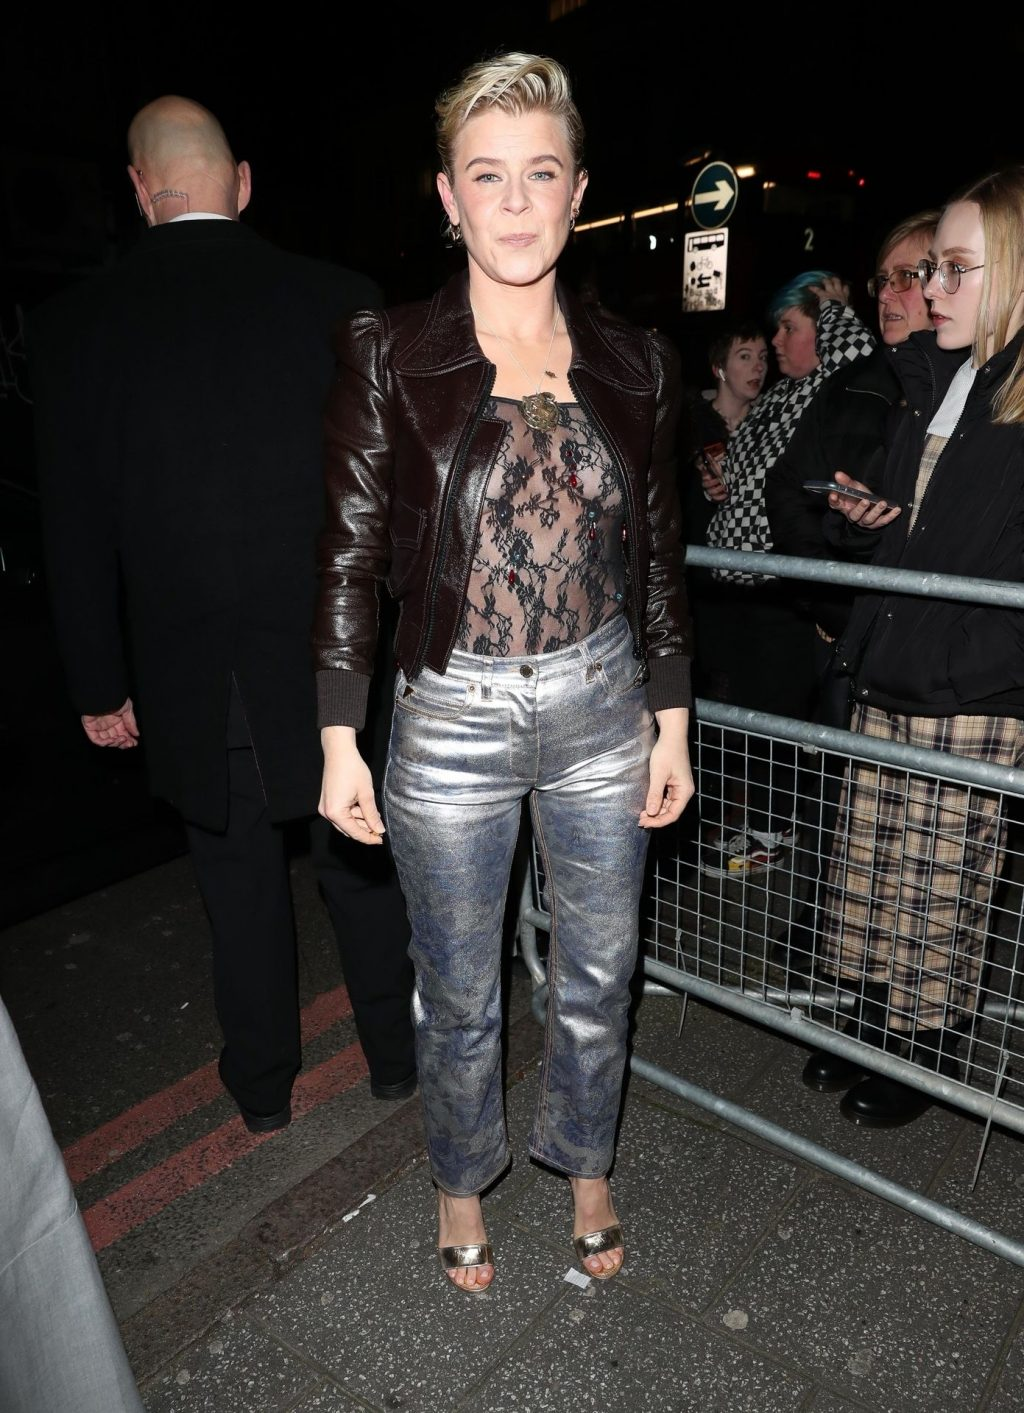 Robyn Makes Busty Appearance with a Friend Arrive at the NME Awards (14 Photos)